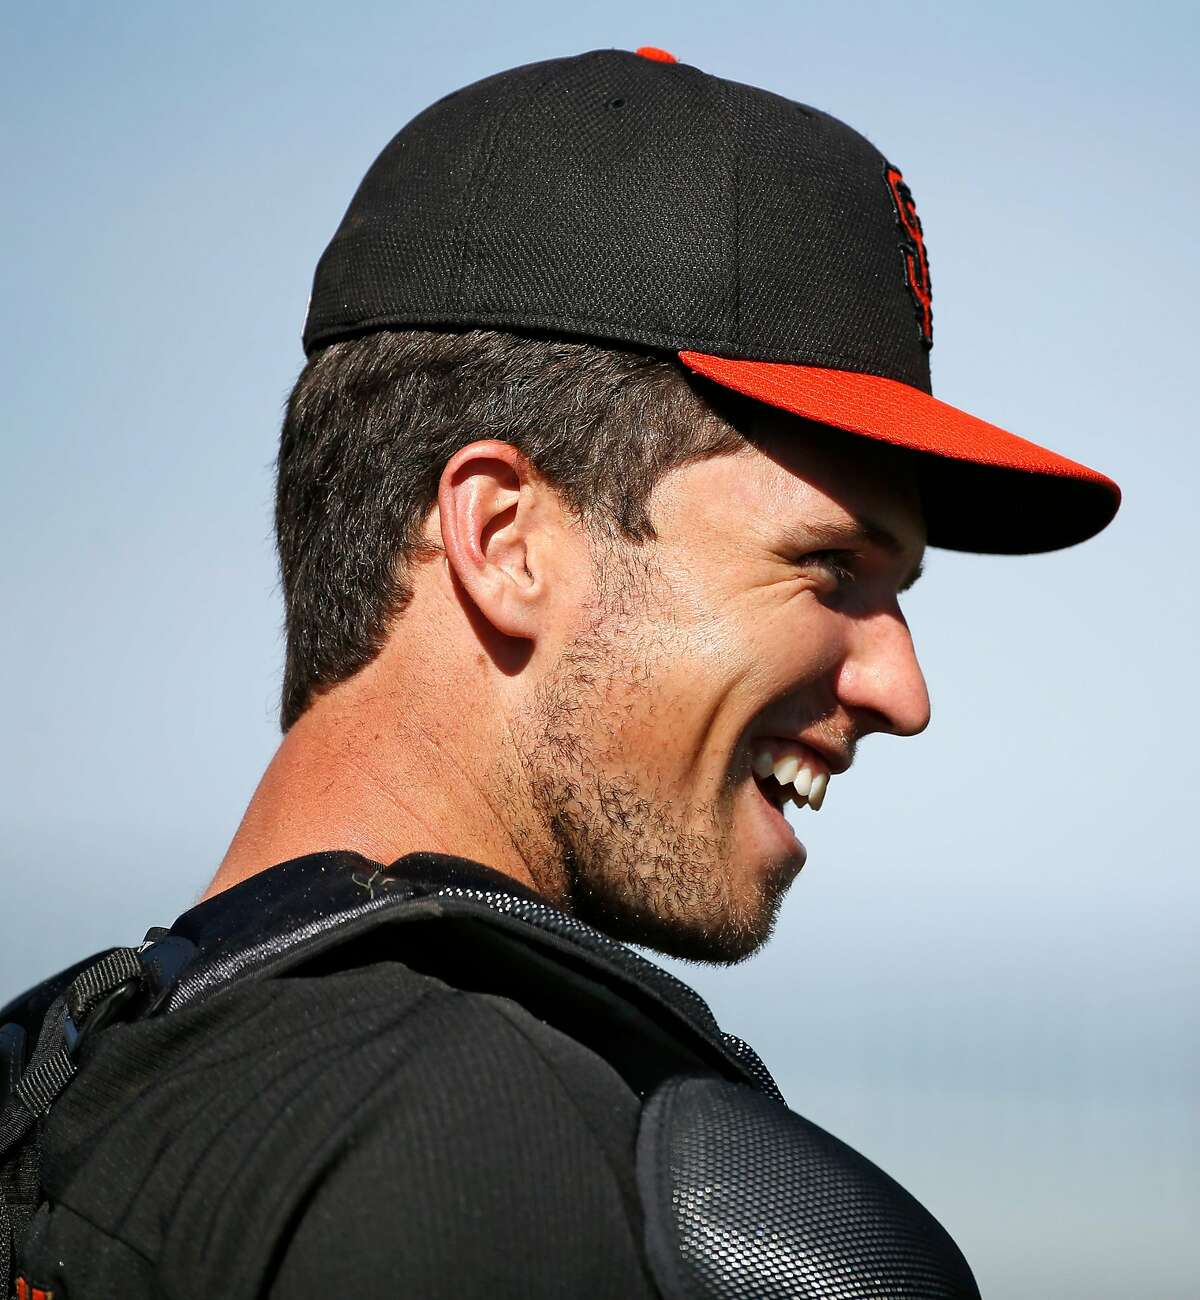 In 2021, Buster Posey will be in the final guaranteed season of his nine-year contract.